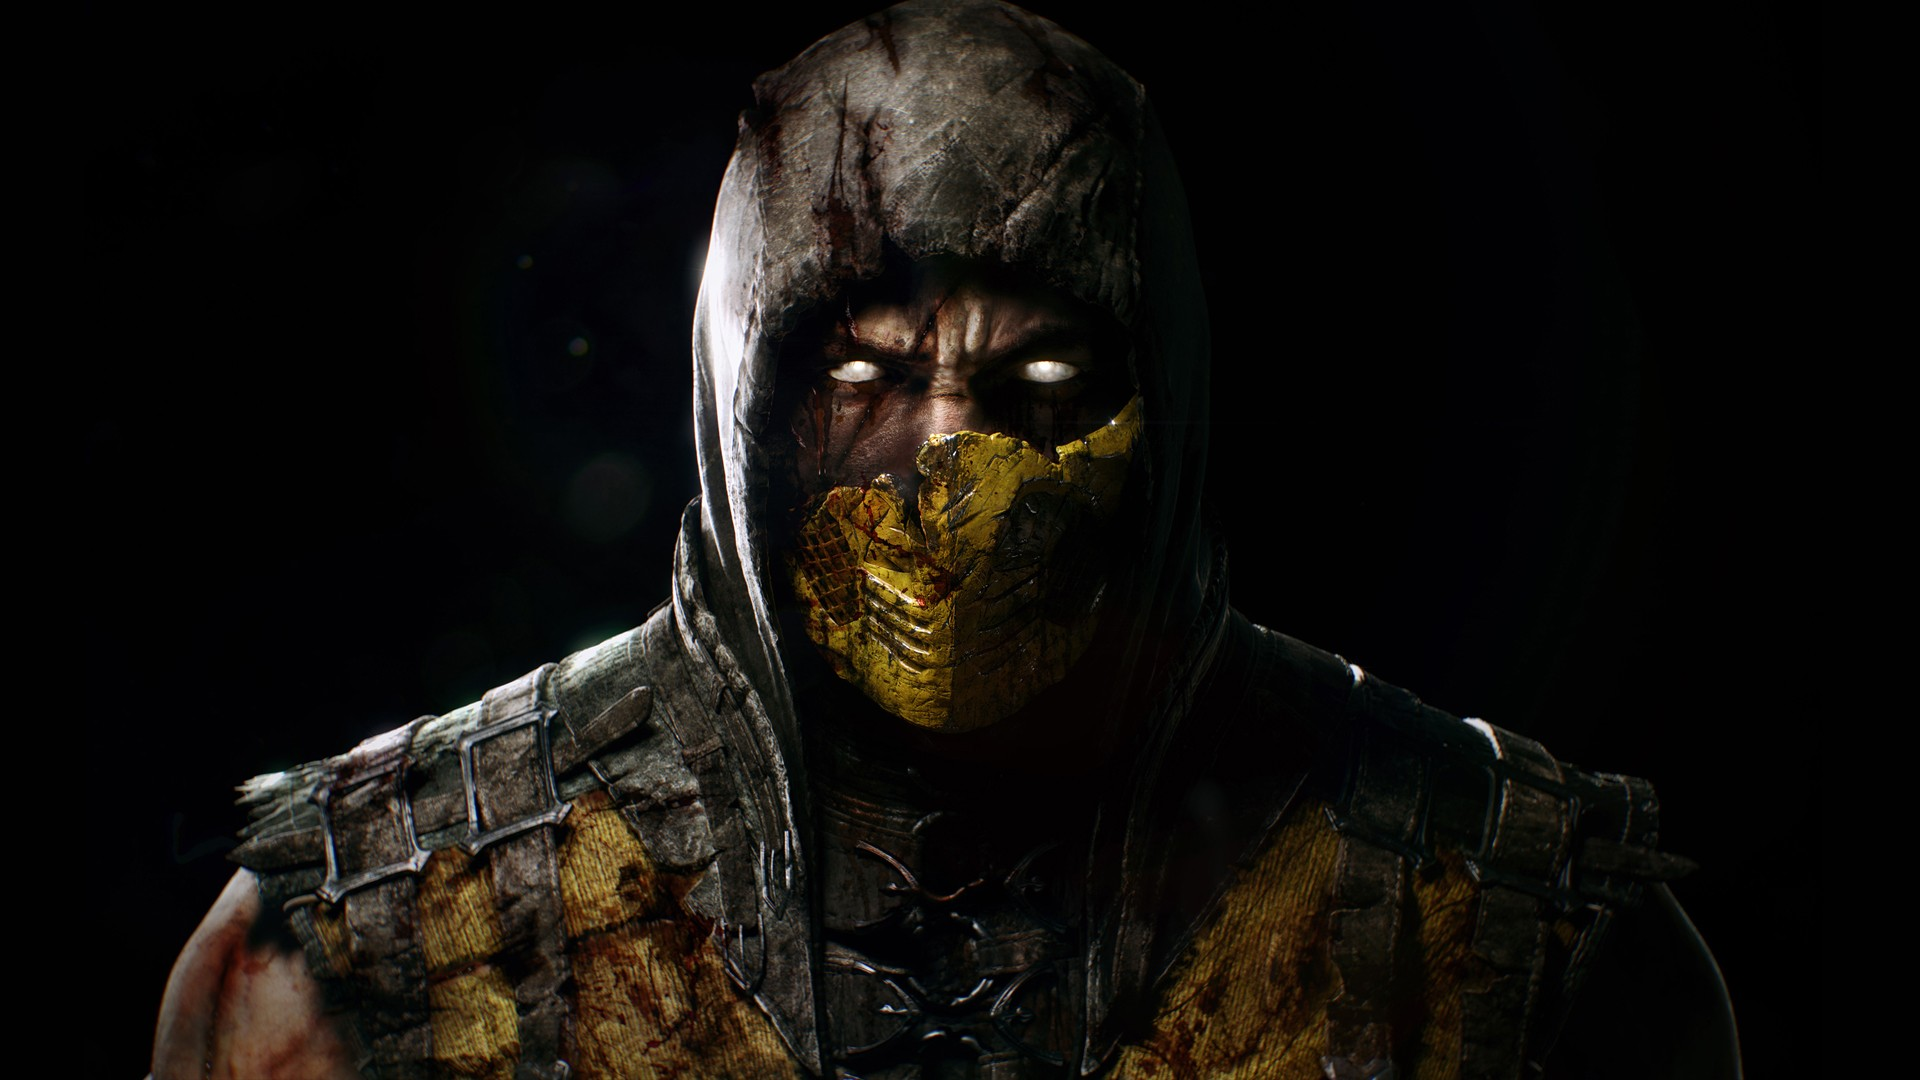 Mortal Kombat X Computer Wallpapers Desktop Backgrounds 1920x1080 1920x1080